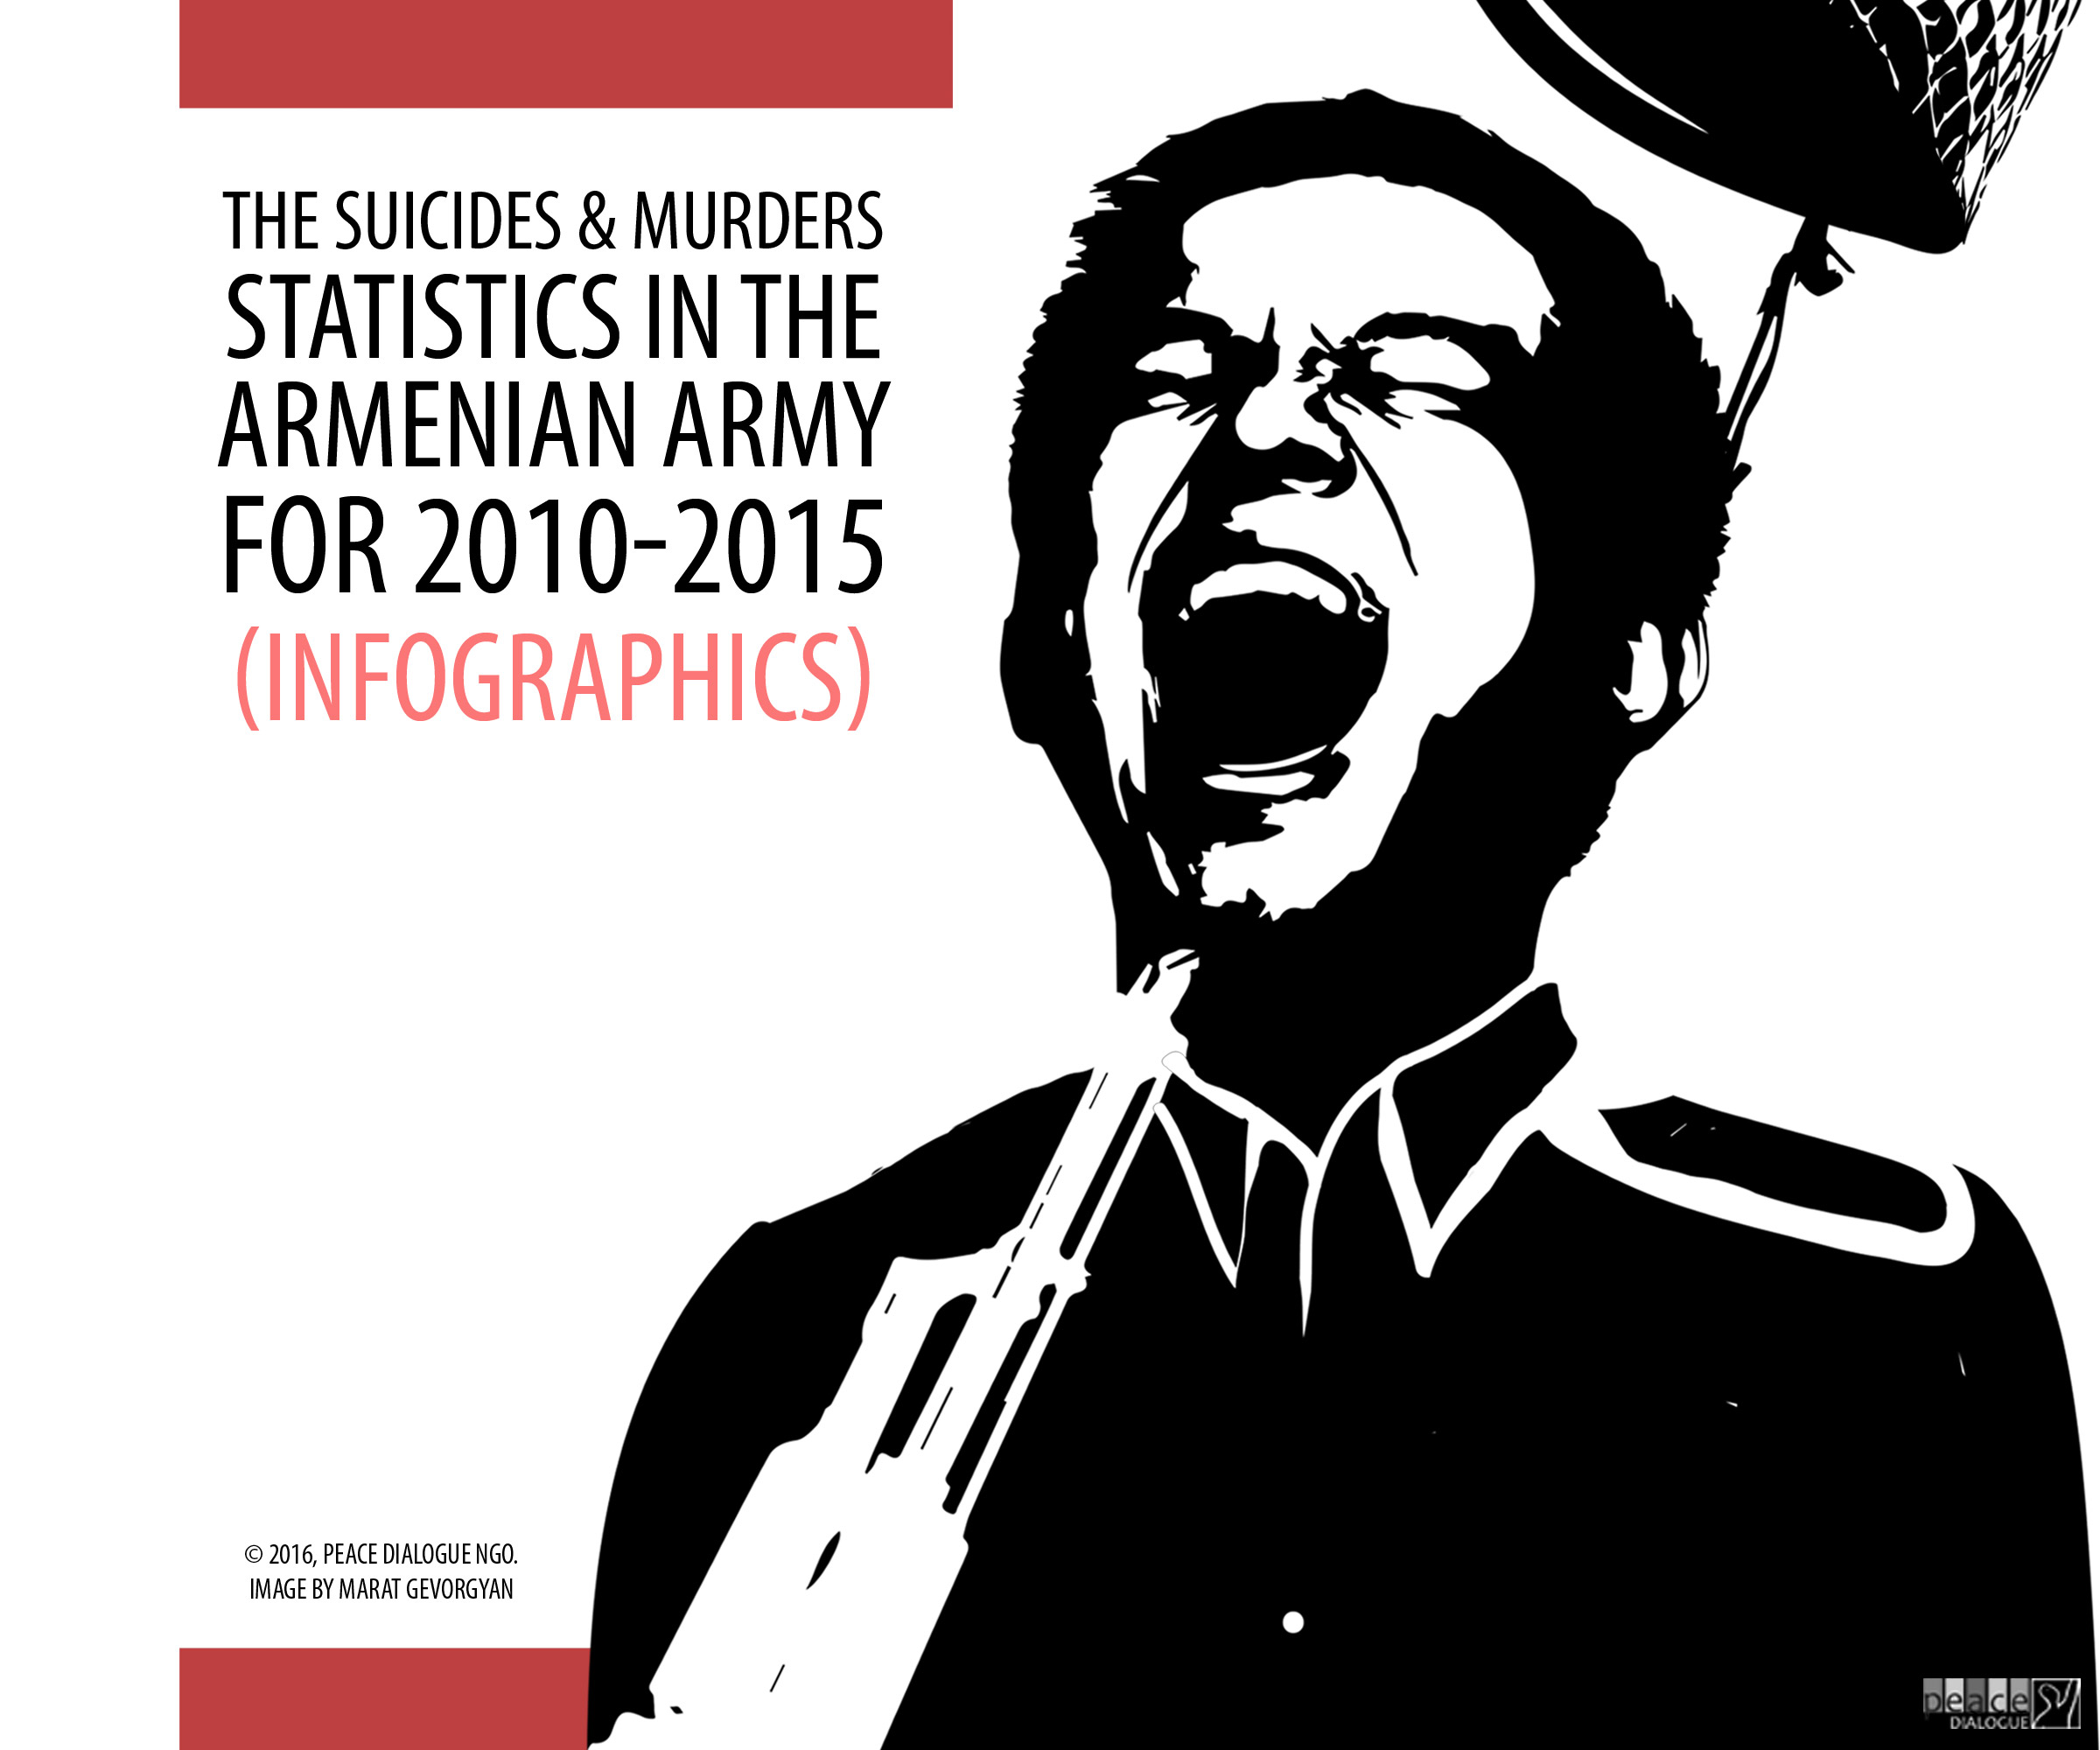 The Suicides and Murders Statistics in the Armenian Army (2010-2015)